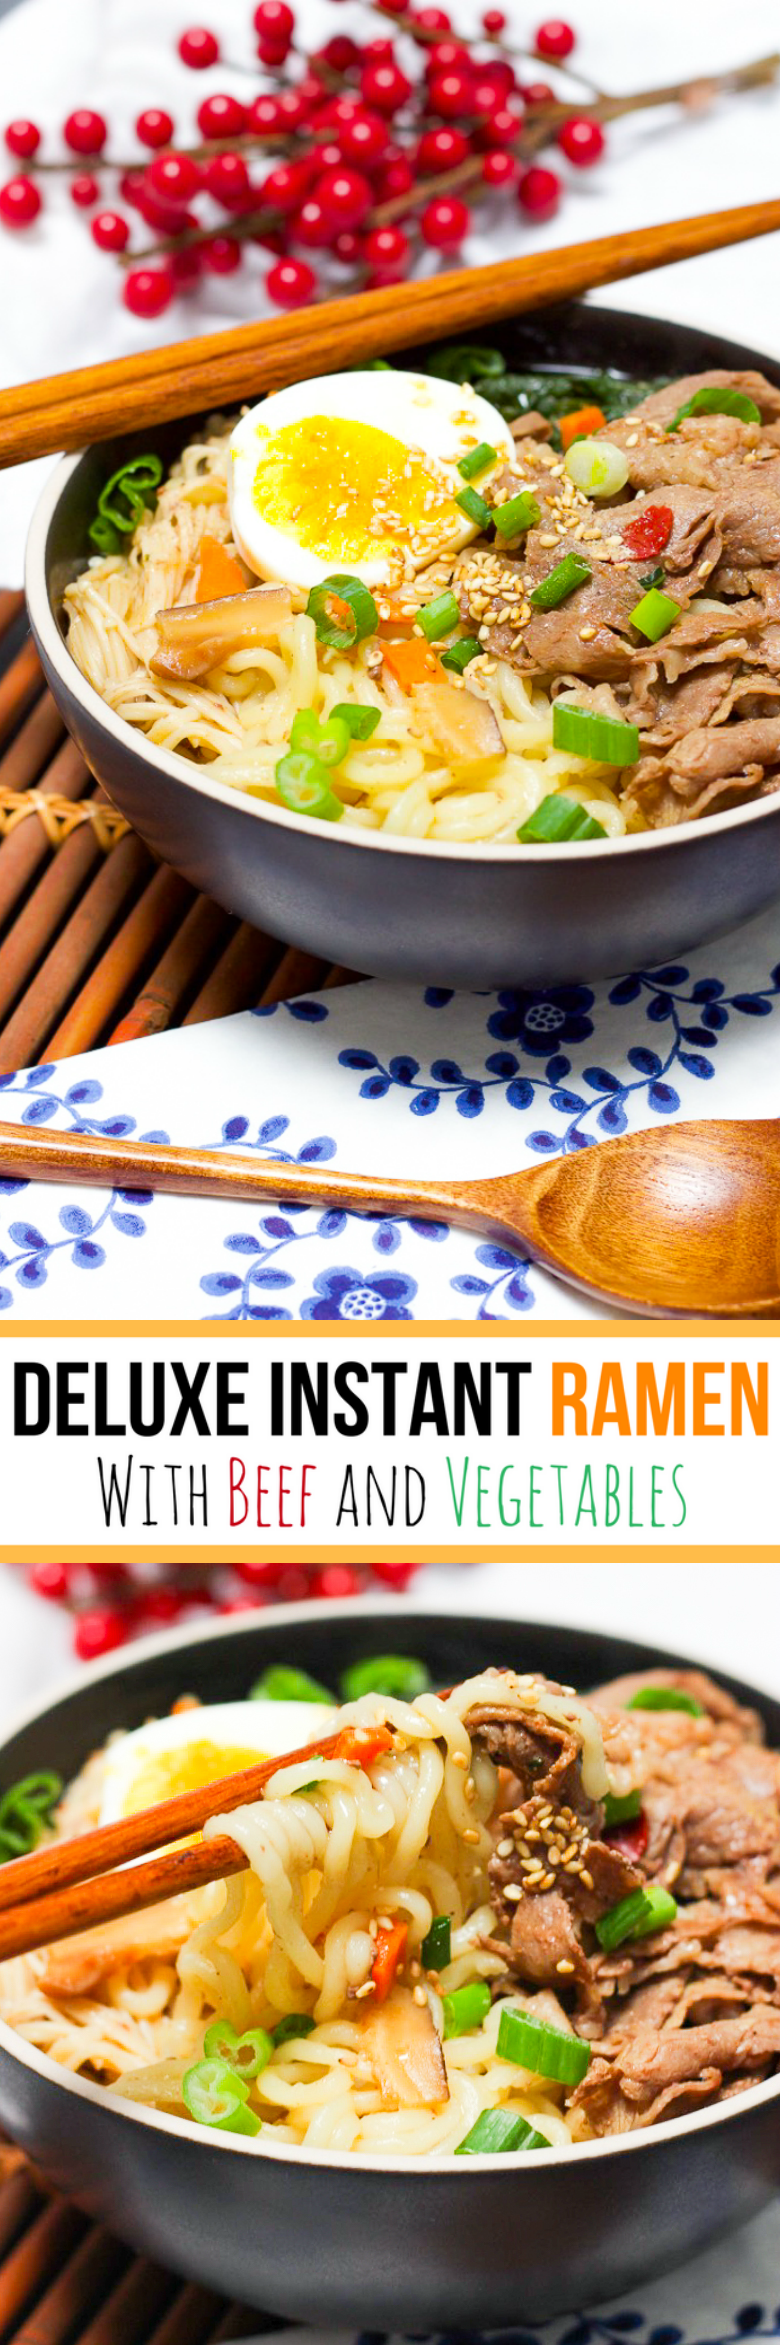 Deluxe Instant Ramen With Beef and Vegetables for Pinterest